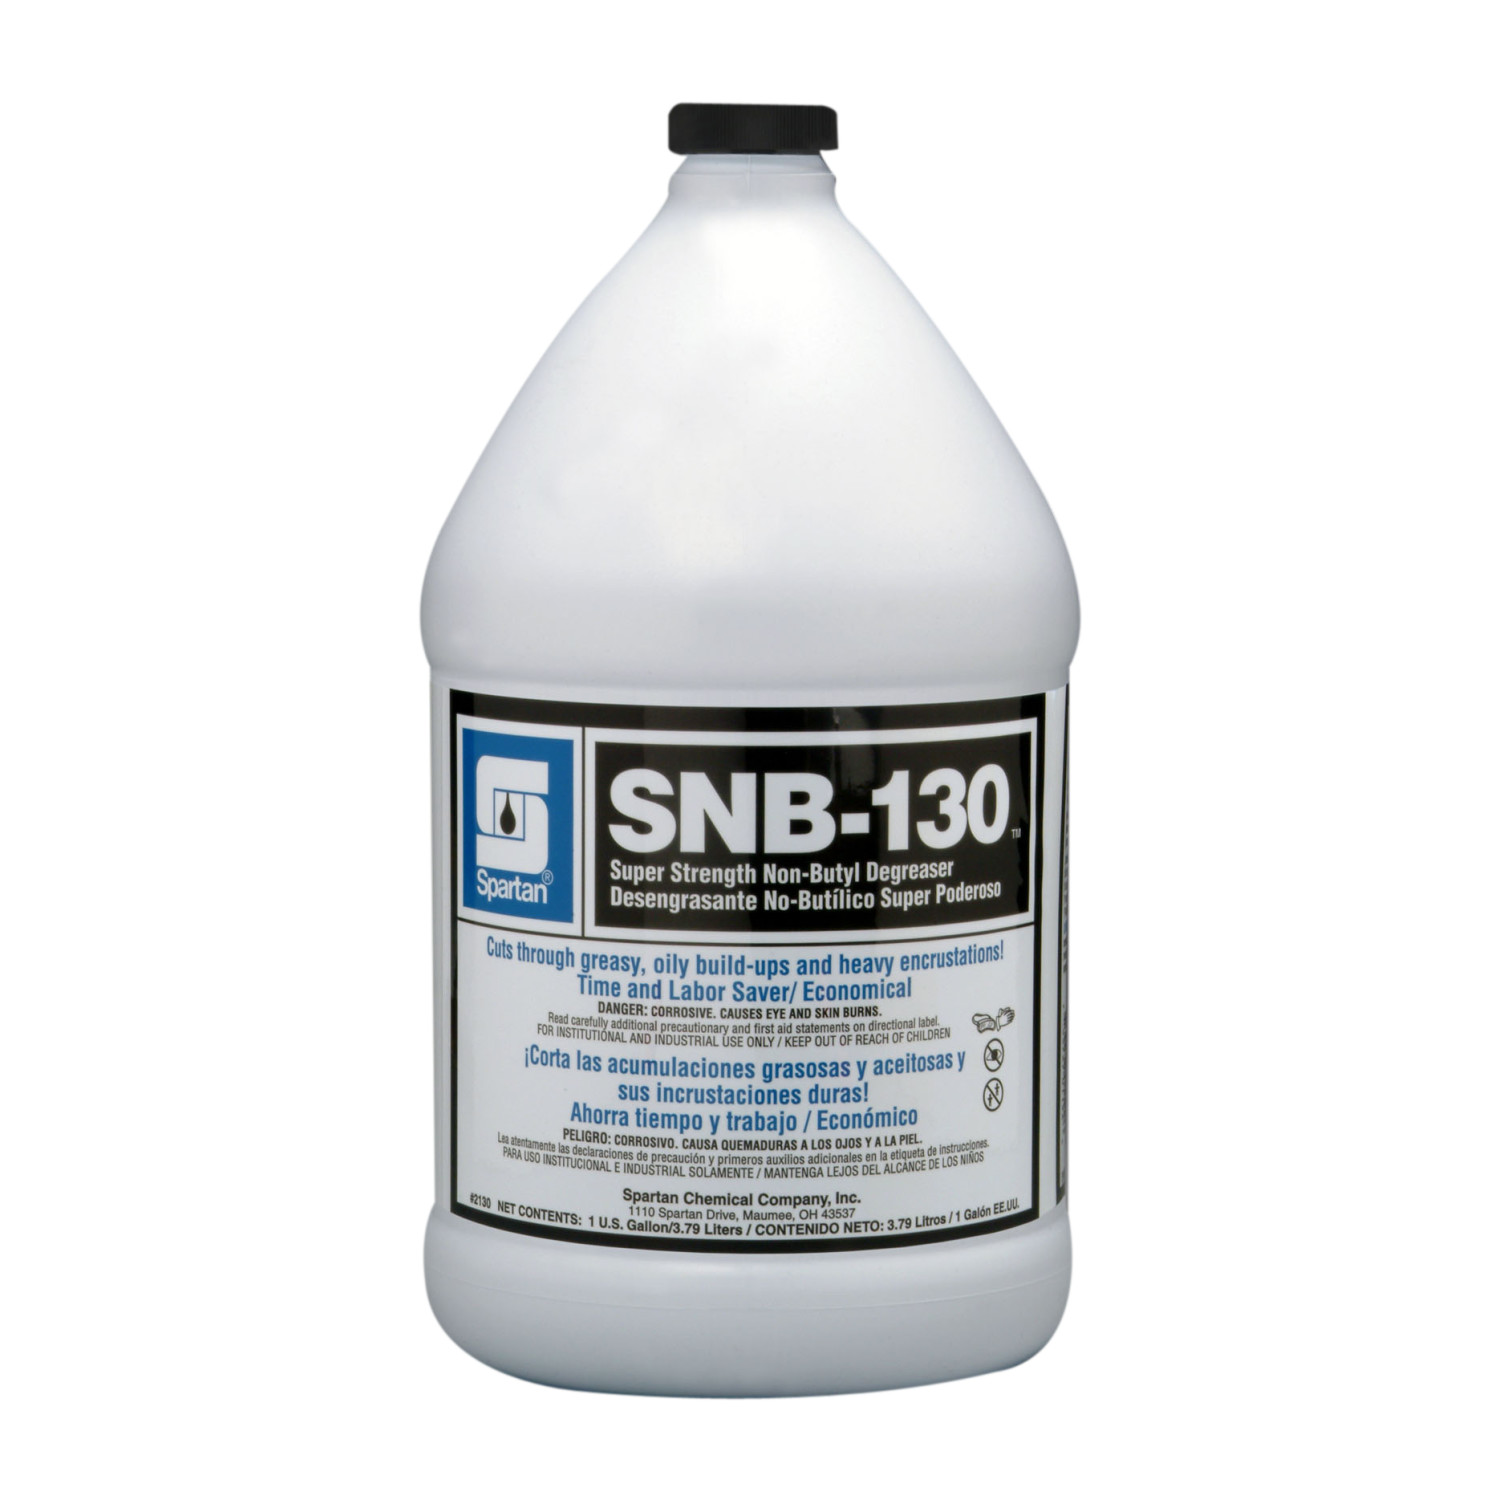 SNB 130 SUPER STRENGTH NON BUTYL DEGREASER (4)